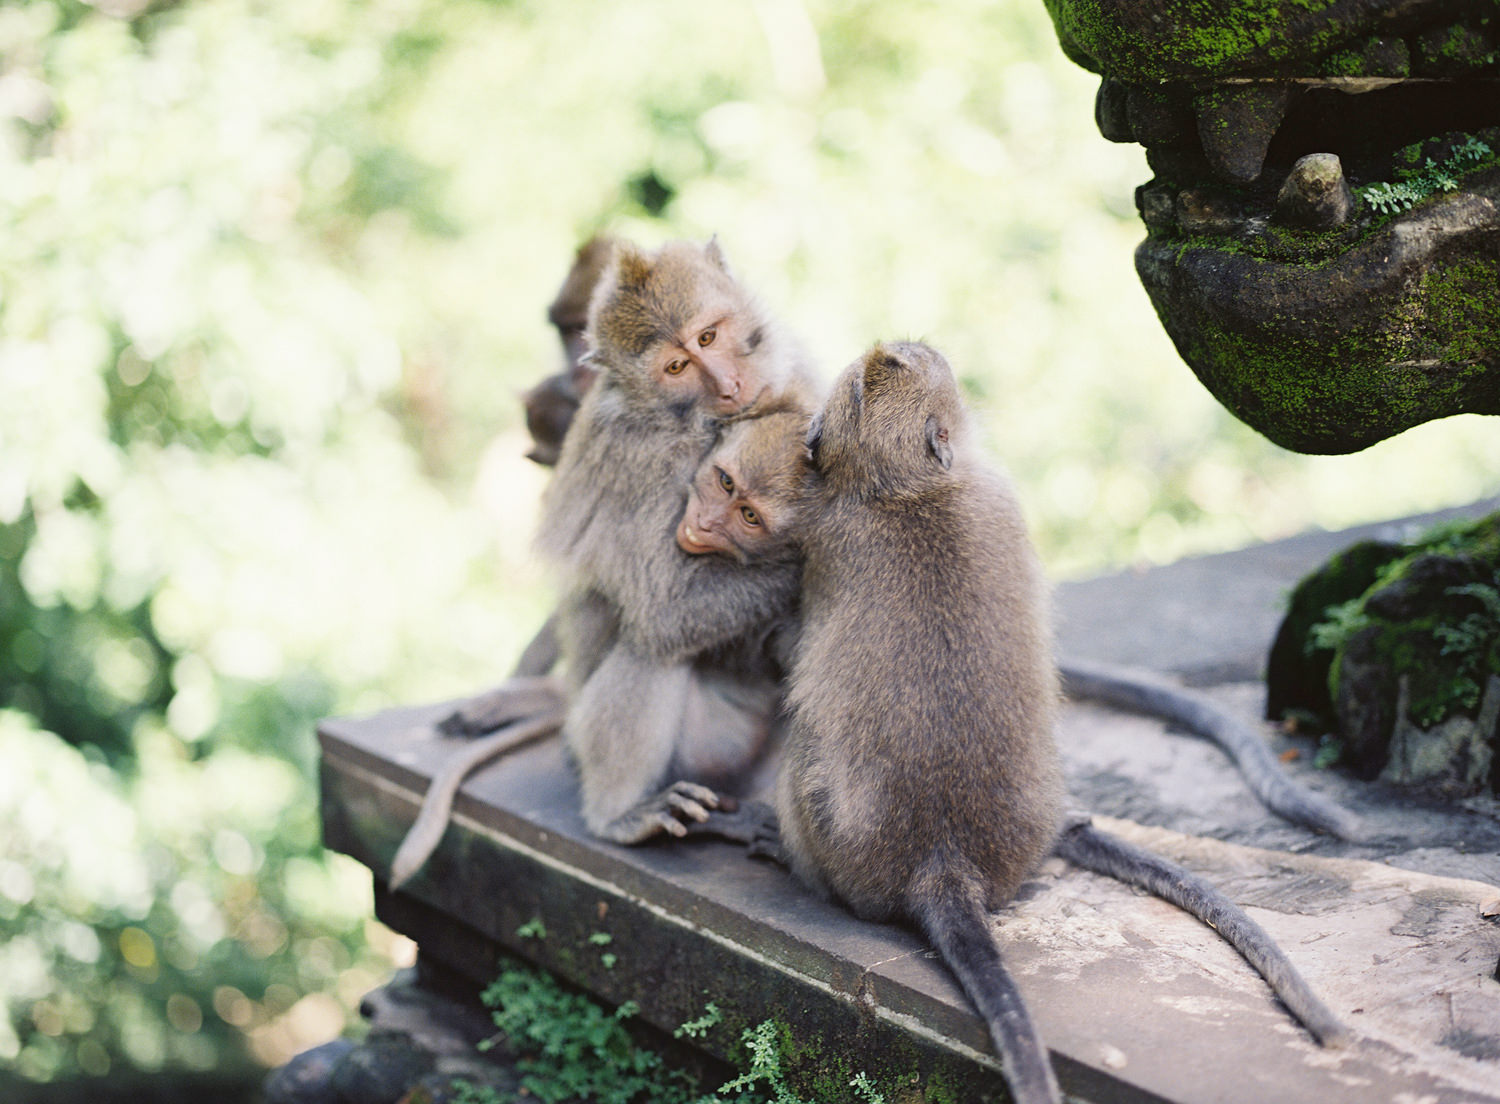 monkeys having fun together in ubud